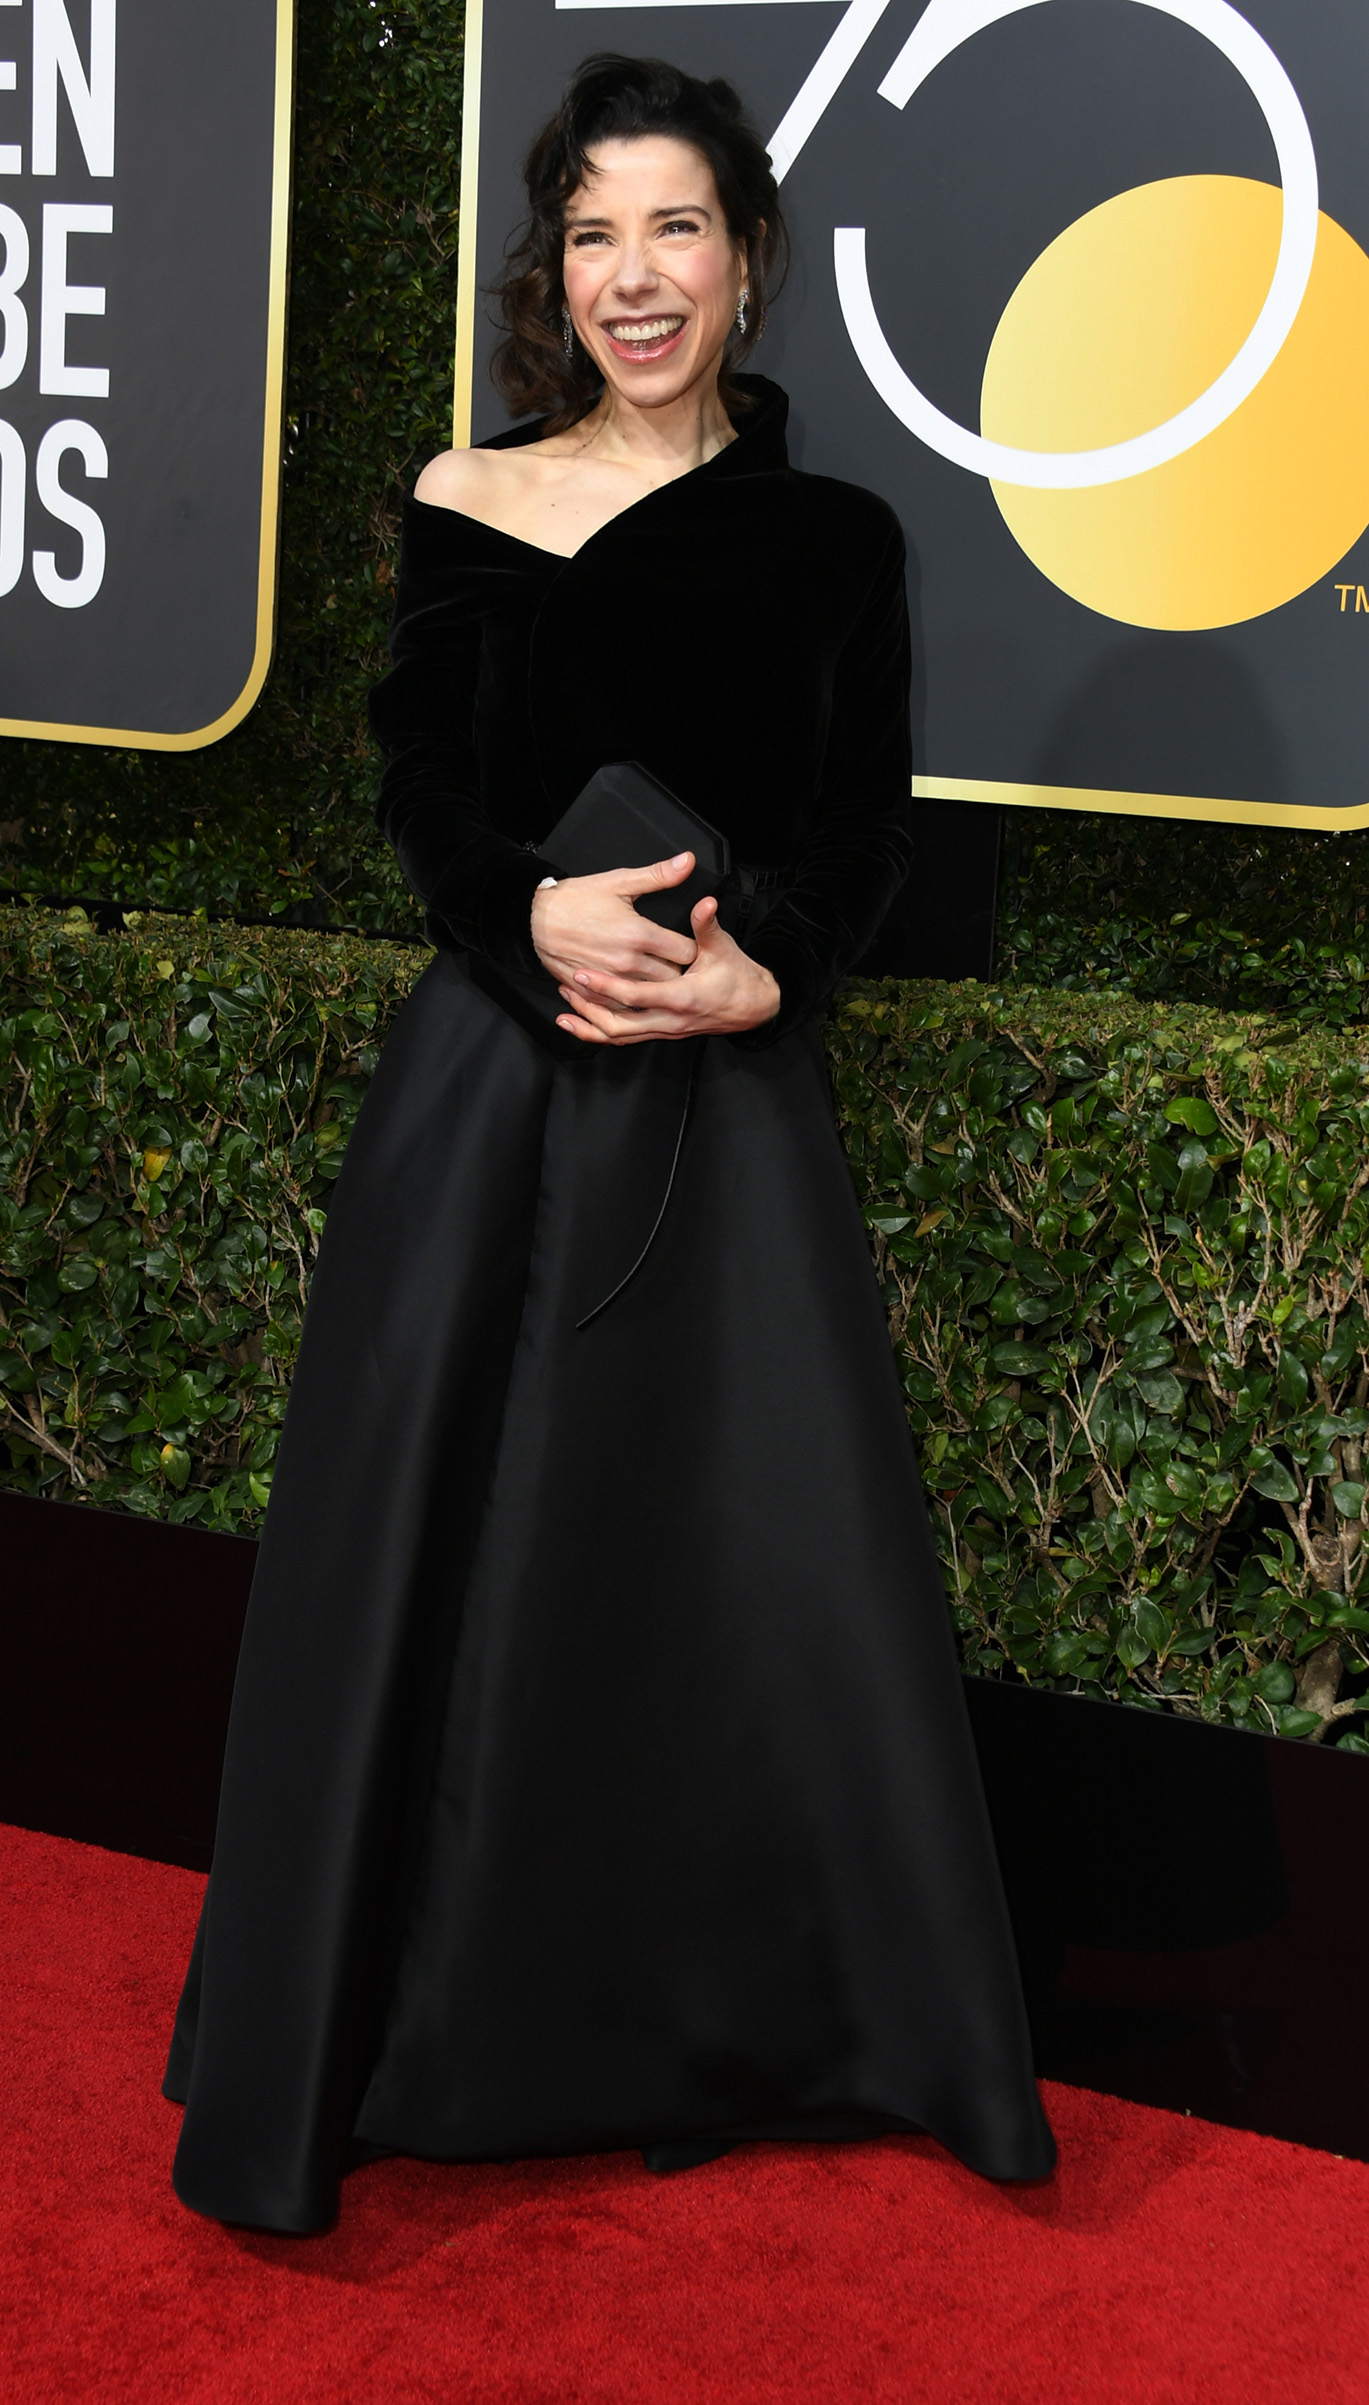 Actress Sally Hawkins arrives for the 75th Golden Globe Awards on January 7, 2018, in Beverly Hills, California.